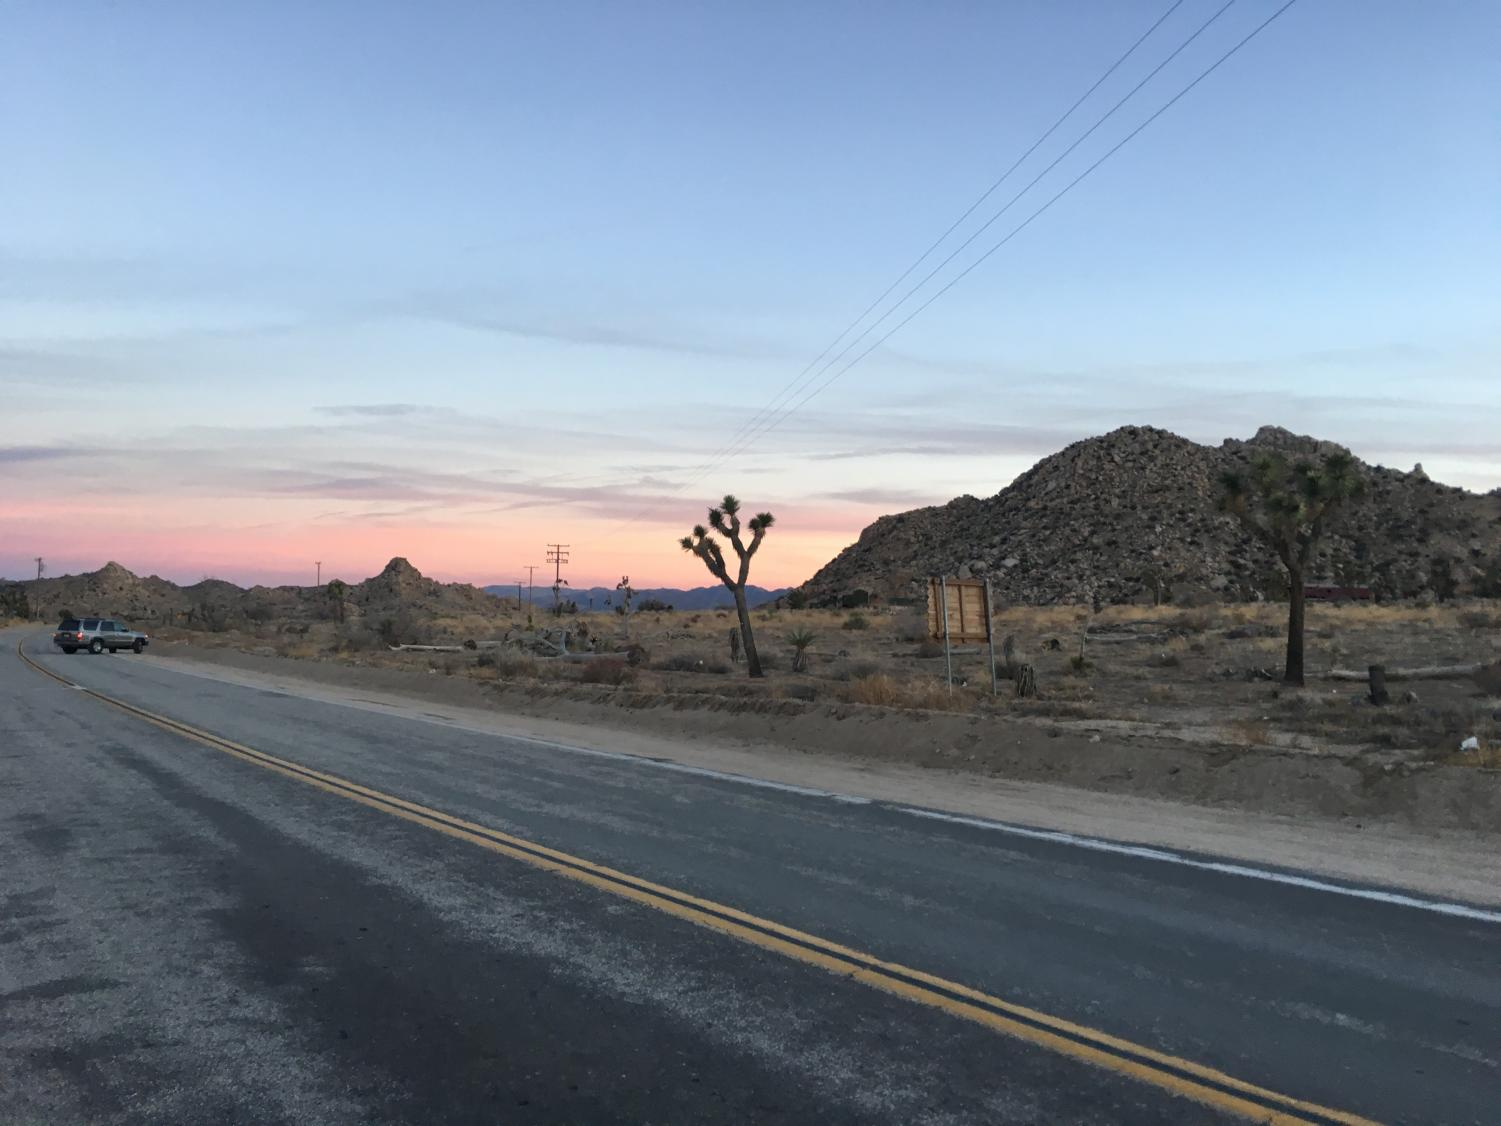 The view at sunset outside of Pappy & Harriet's (53688 Pioneertown Rd, Pioneertown, CA 92268).